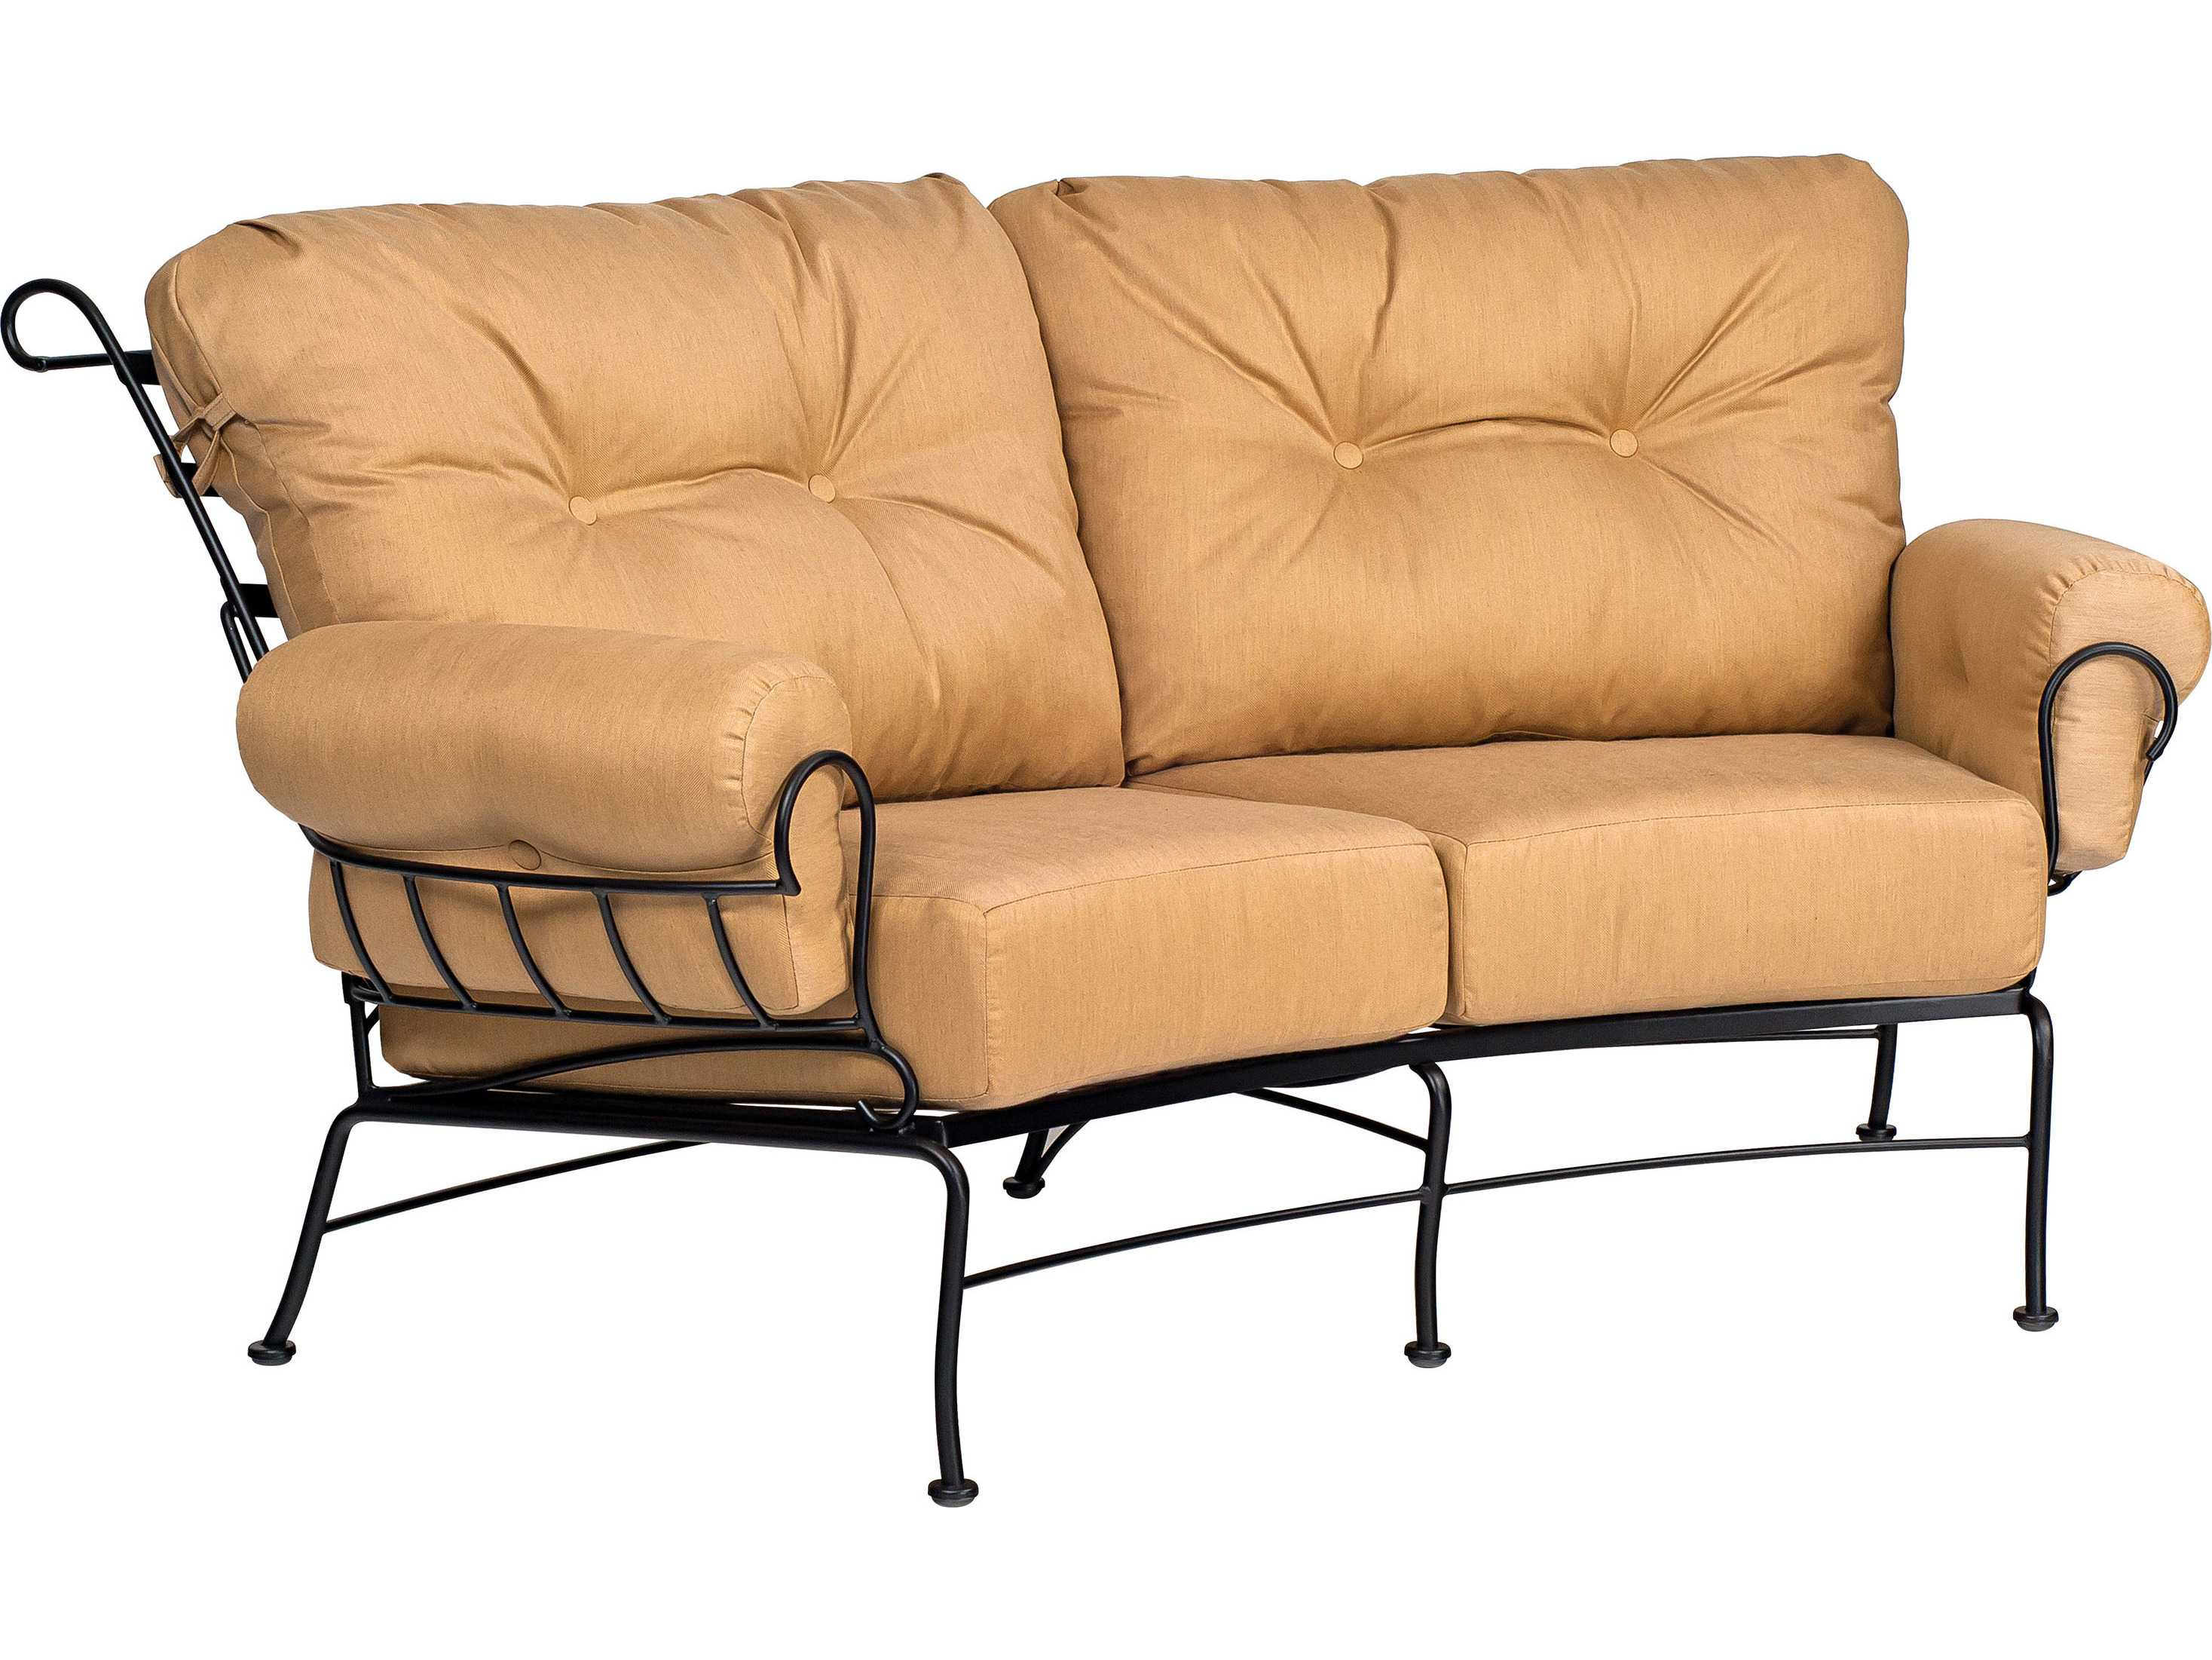 Woodard Terrace Cushion Wrought Iron Lounge Set ...